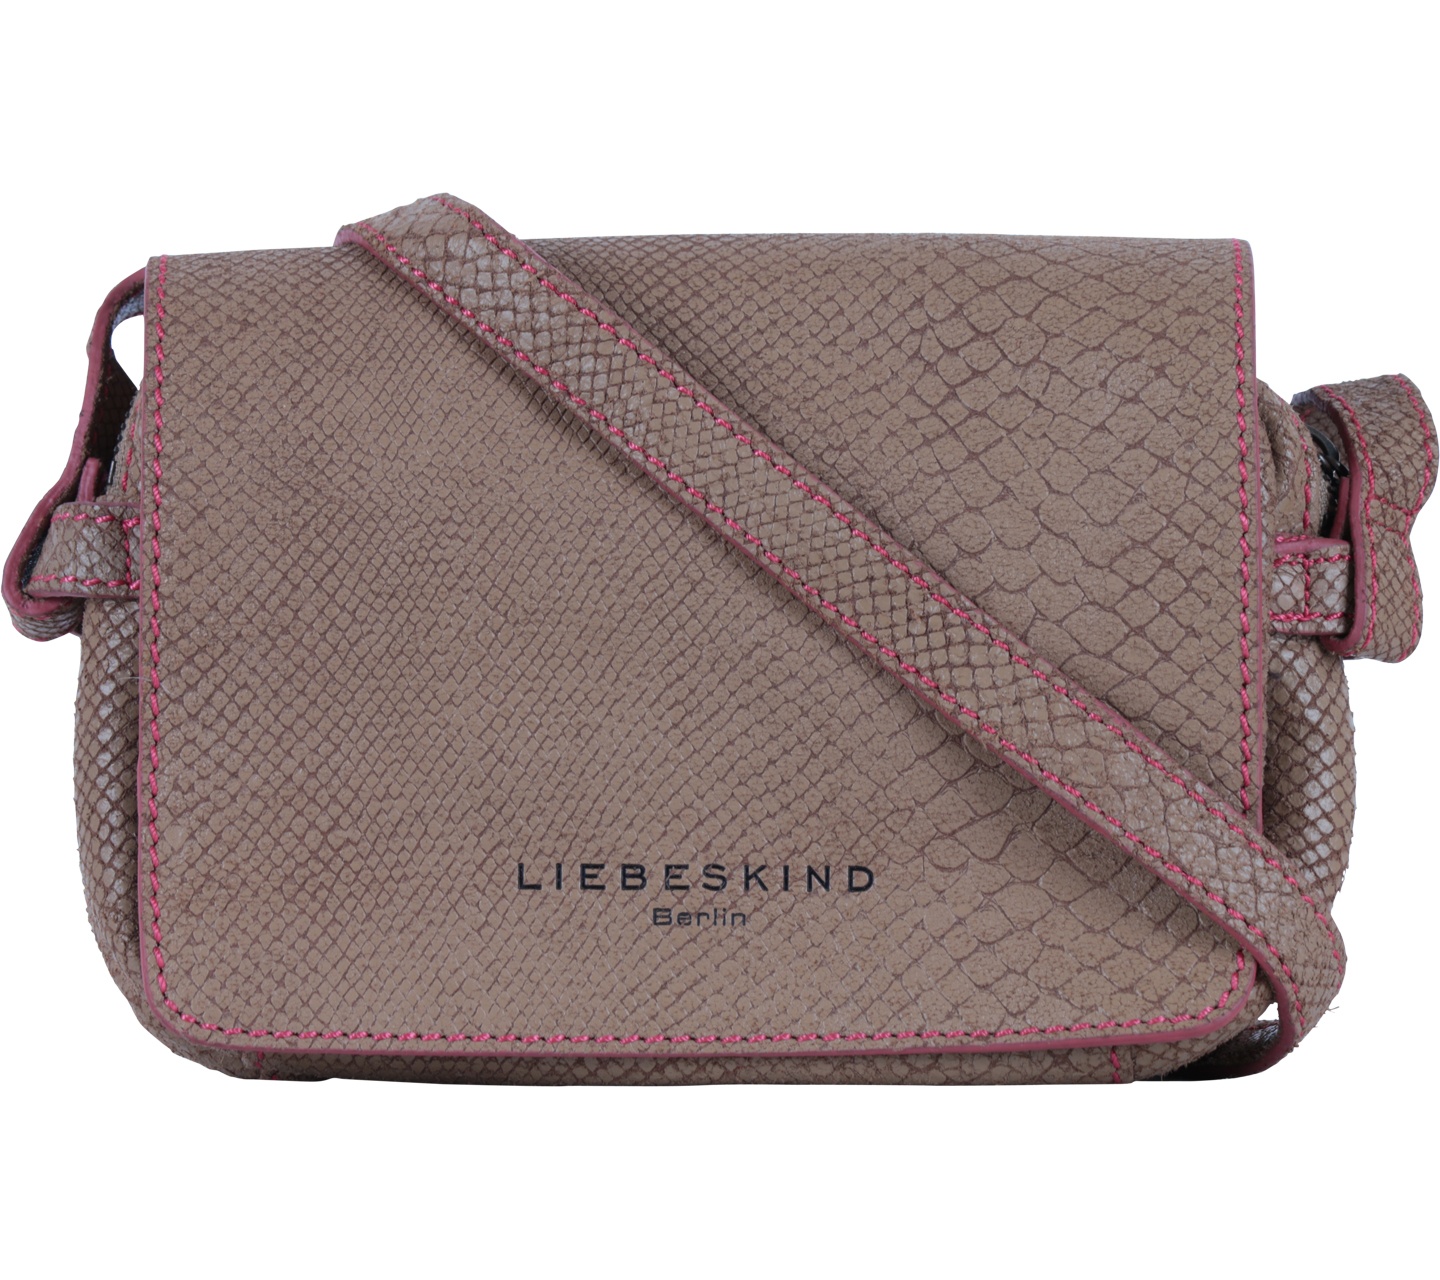 Liebeskind Brown Sling Bag